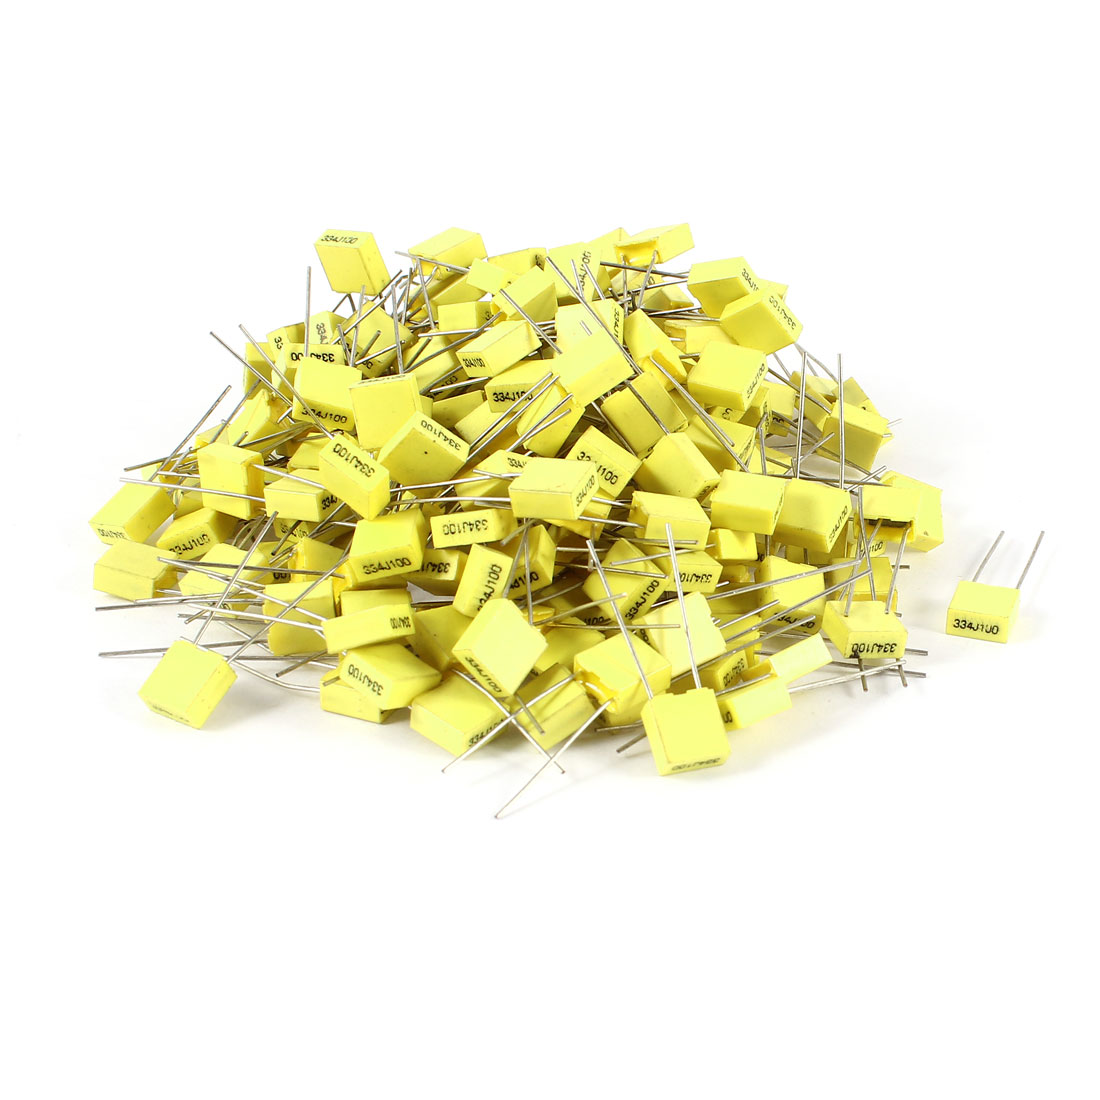 200 Pcs 100V 0.33uF 330NF Radial Lead Box Type Film Correction Capacitors Yellow